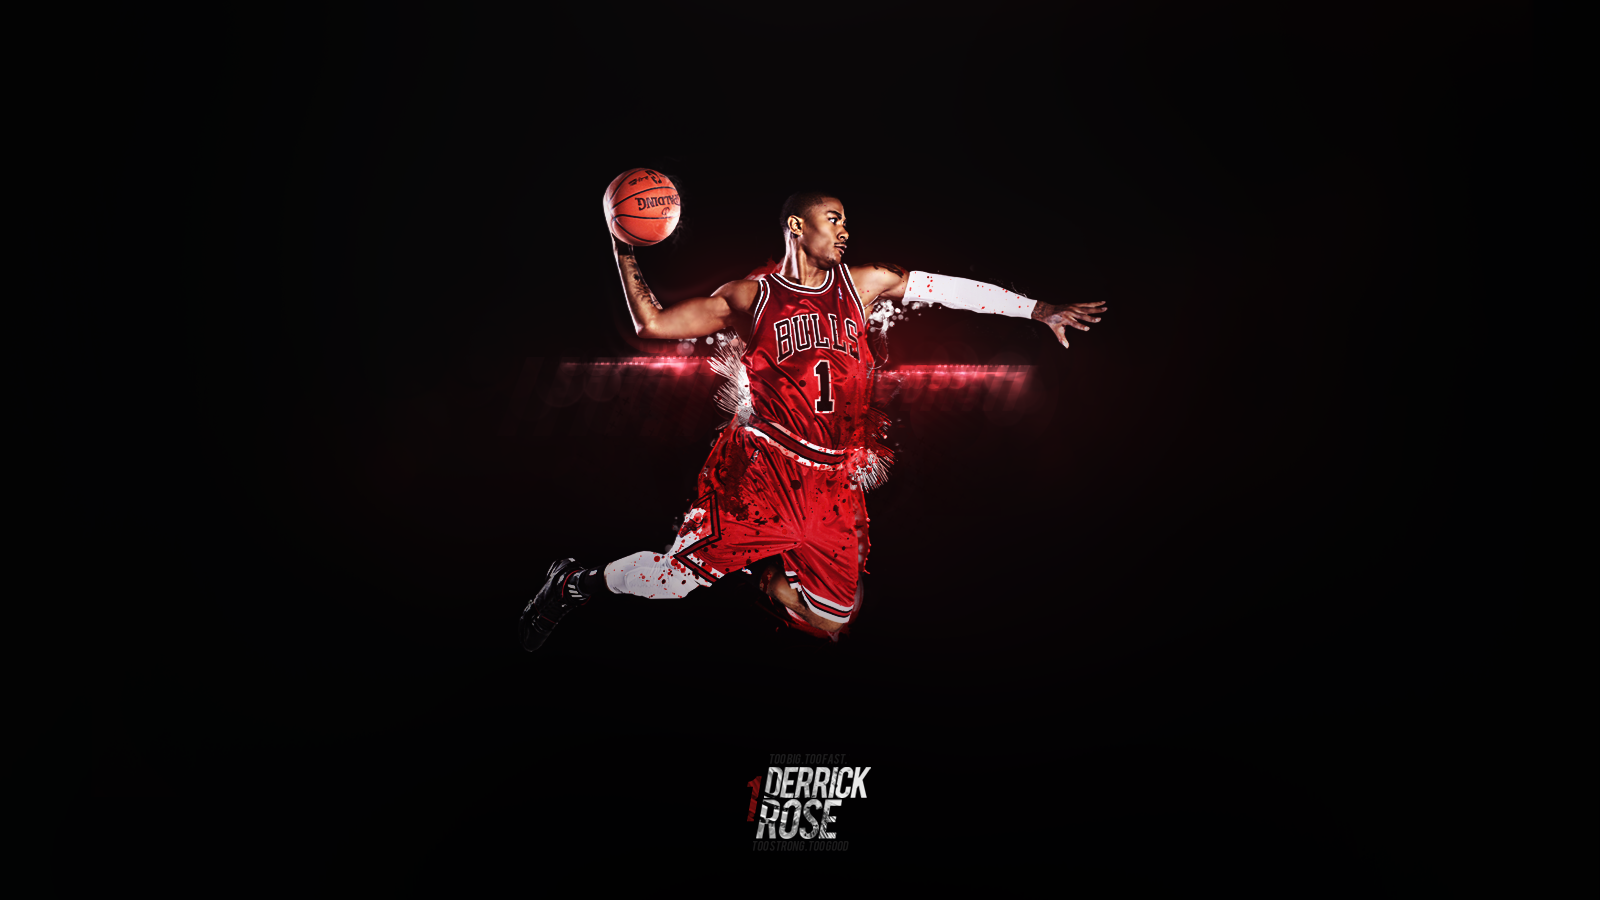 http://1.bp.blogspot.com/-x5UoW_AJDqY/T9G7OJs6H0I/AAAAAAAAErw/QHC1_Xoj8kI/s1600/derrick-rose-dunk-wallpaper-basketball-wallpapers.png